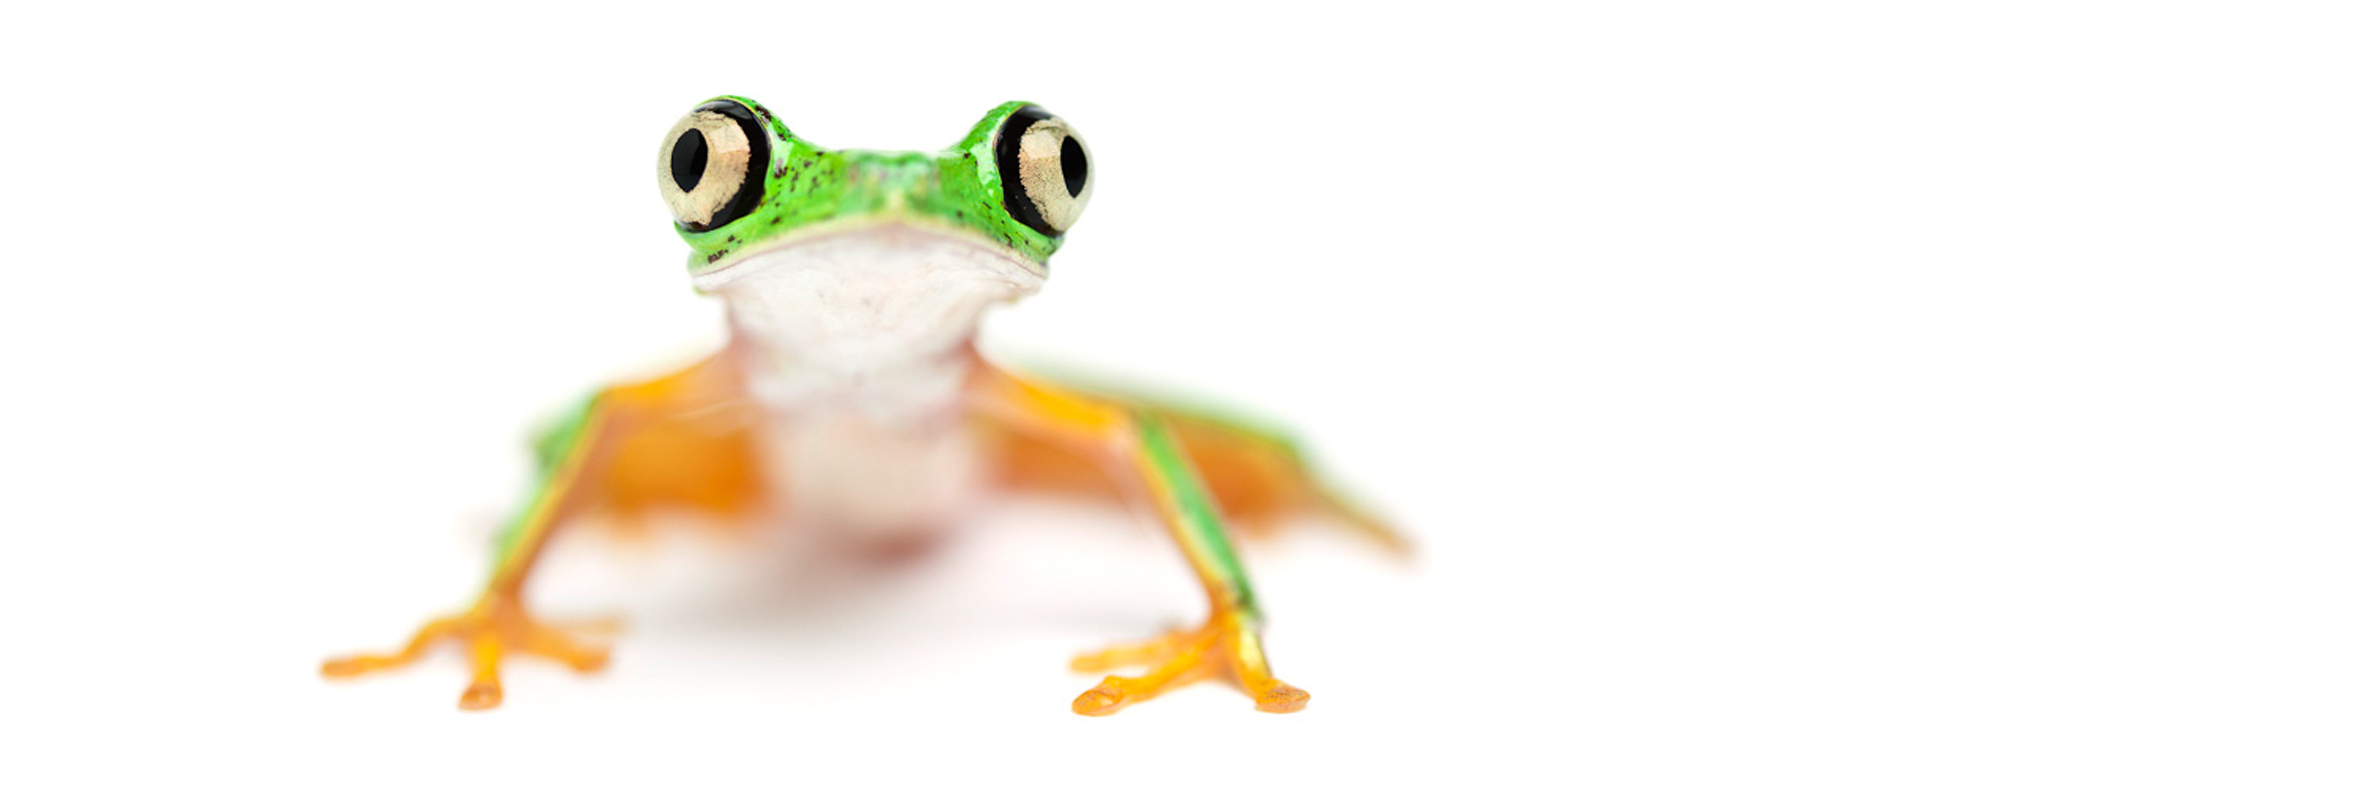 Frogs at Manchester Museums Vivarium which will be a part of this year's University of Manchester Community Festival